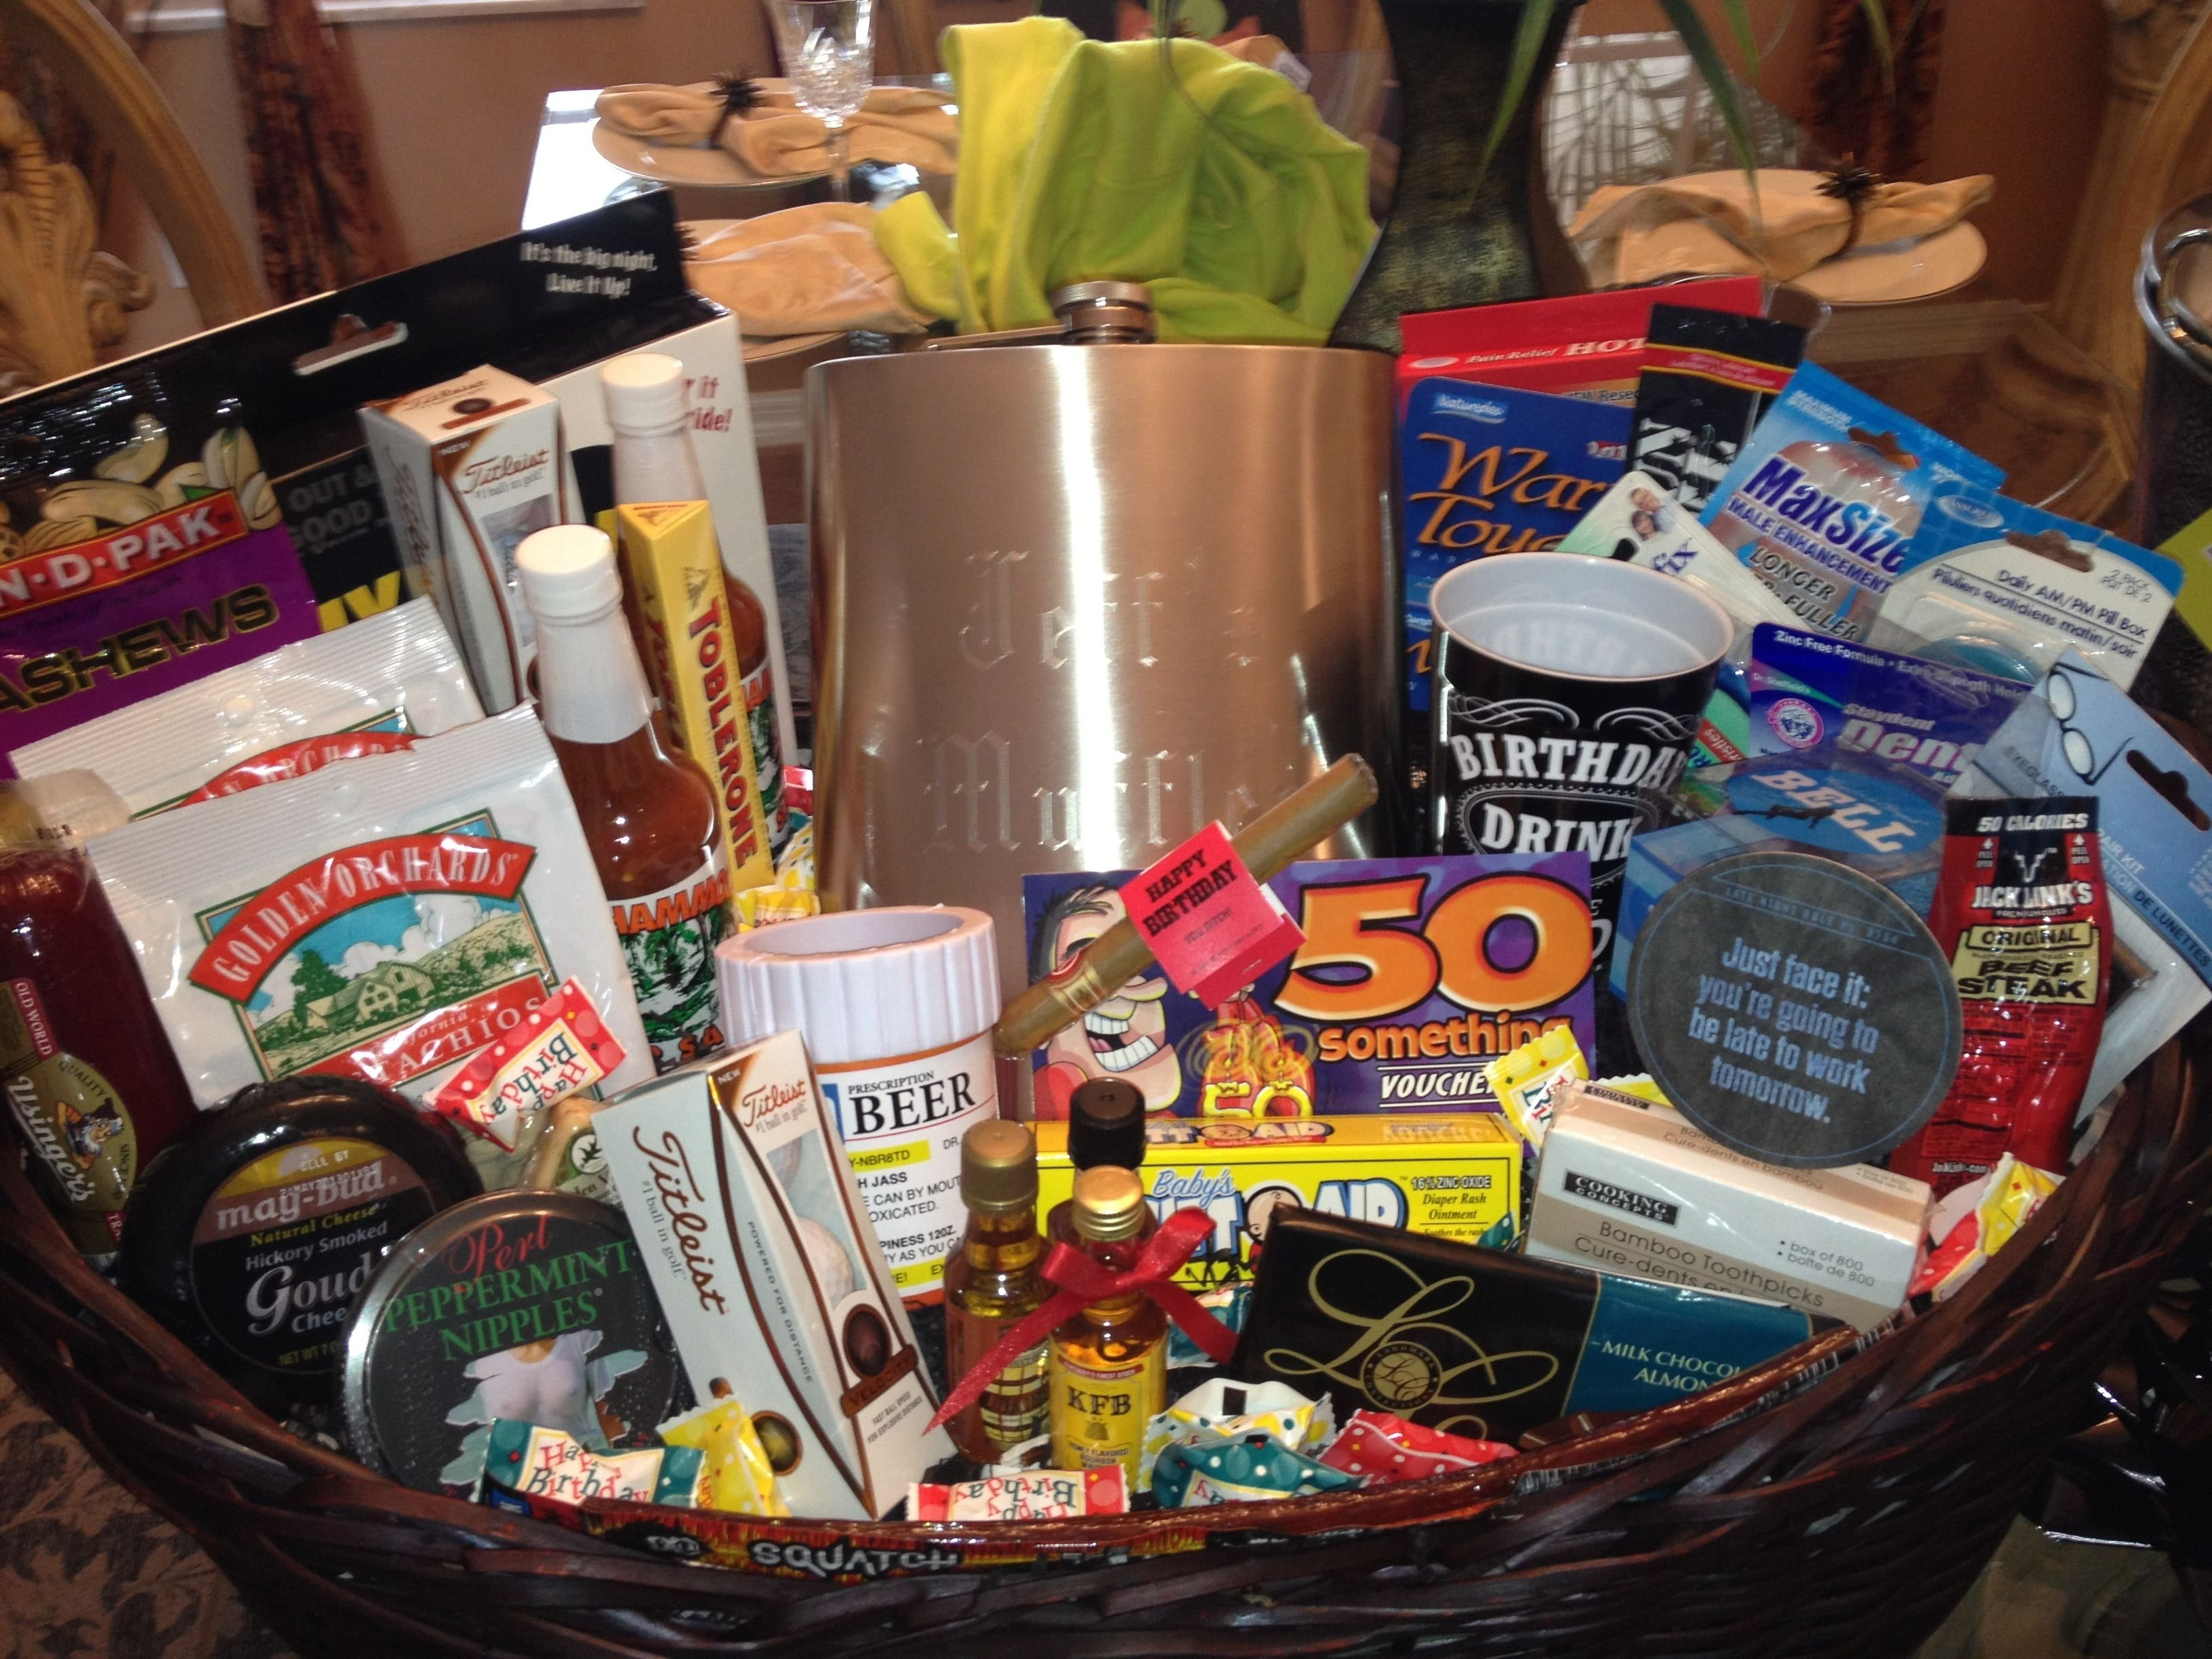 10 Famous 50 Year Birthday Gift Ideas 50th birthday gift basket for him 50th birthday gift basketw 25 2020